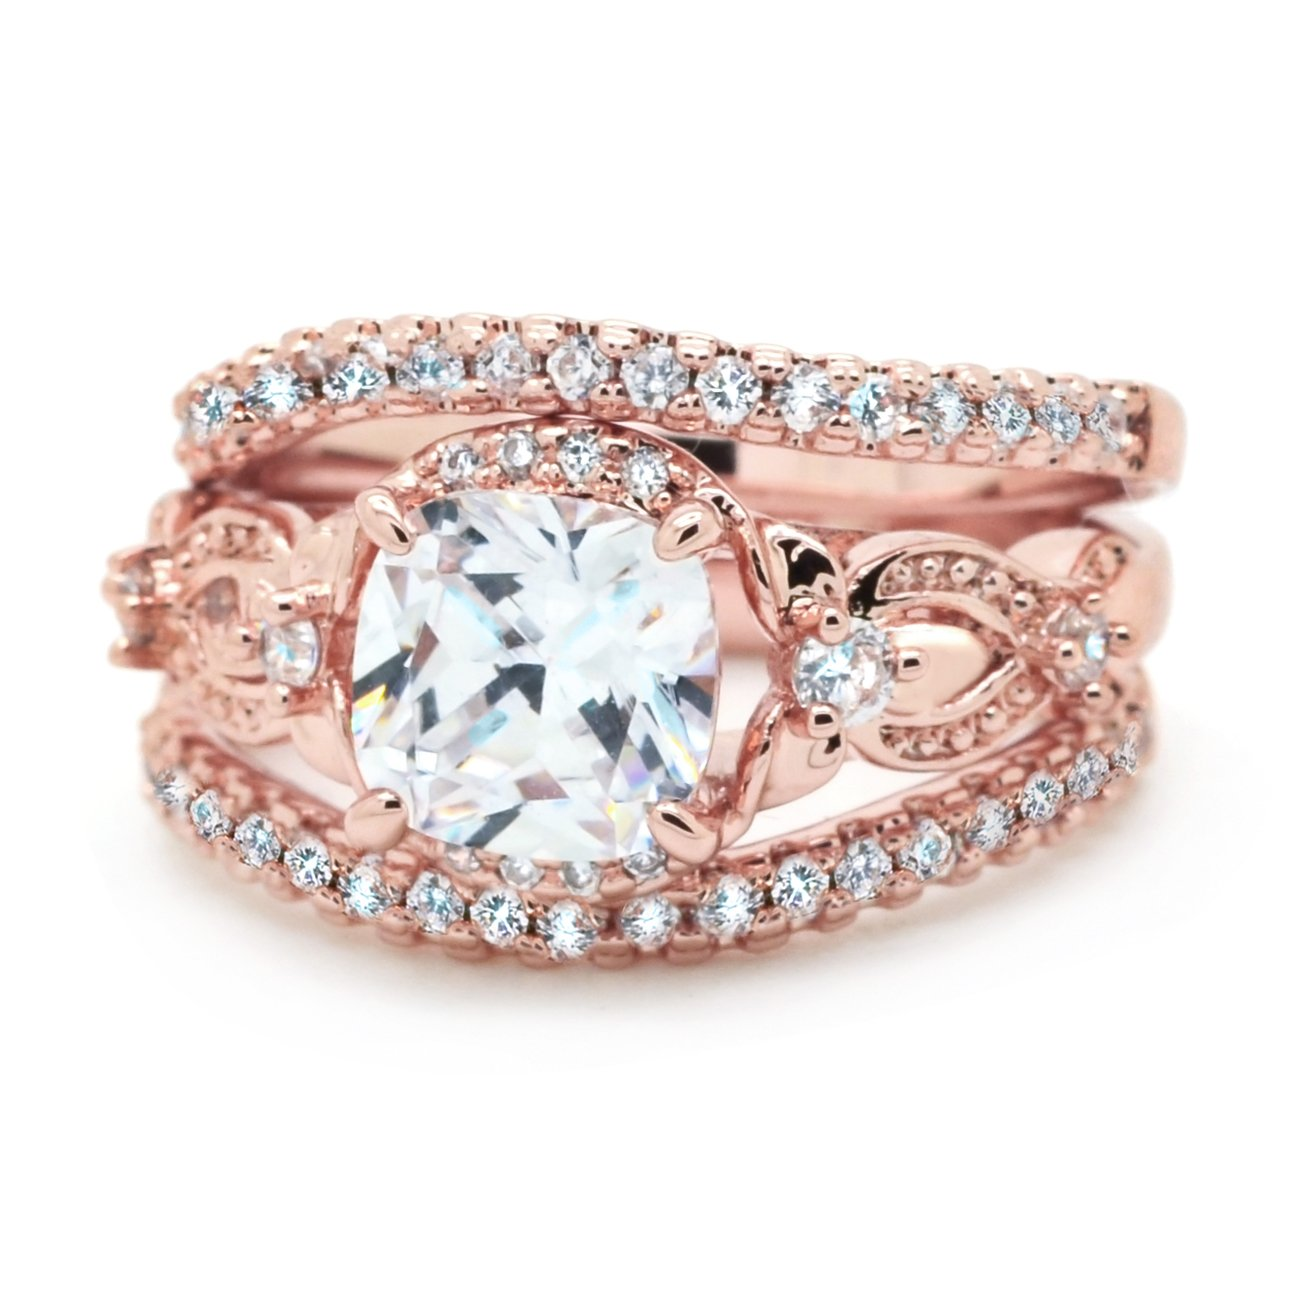 Sparkly Bride Wedding Ring Set 3 Piece Cushion CZ Wave Band Rose Gold Plated Flower Side Stone Size 7